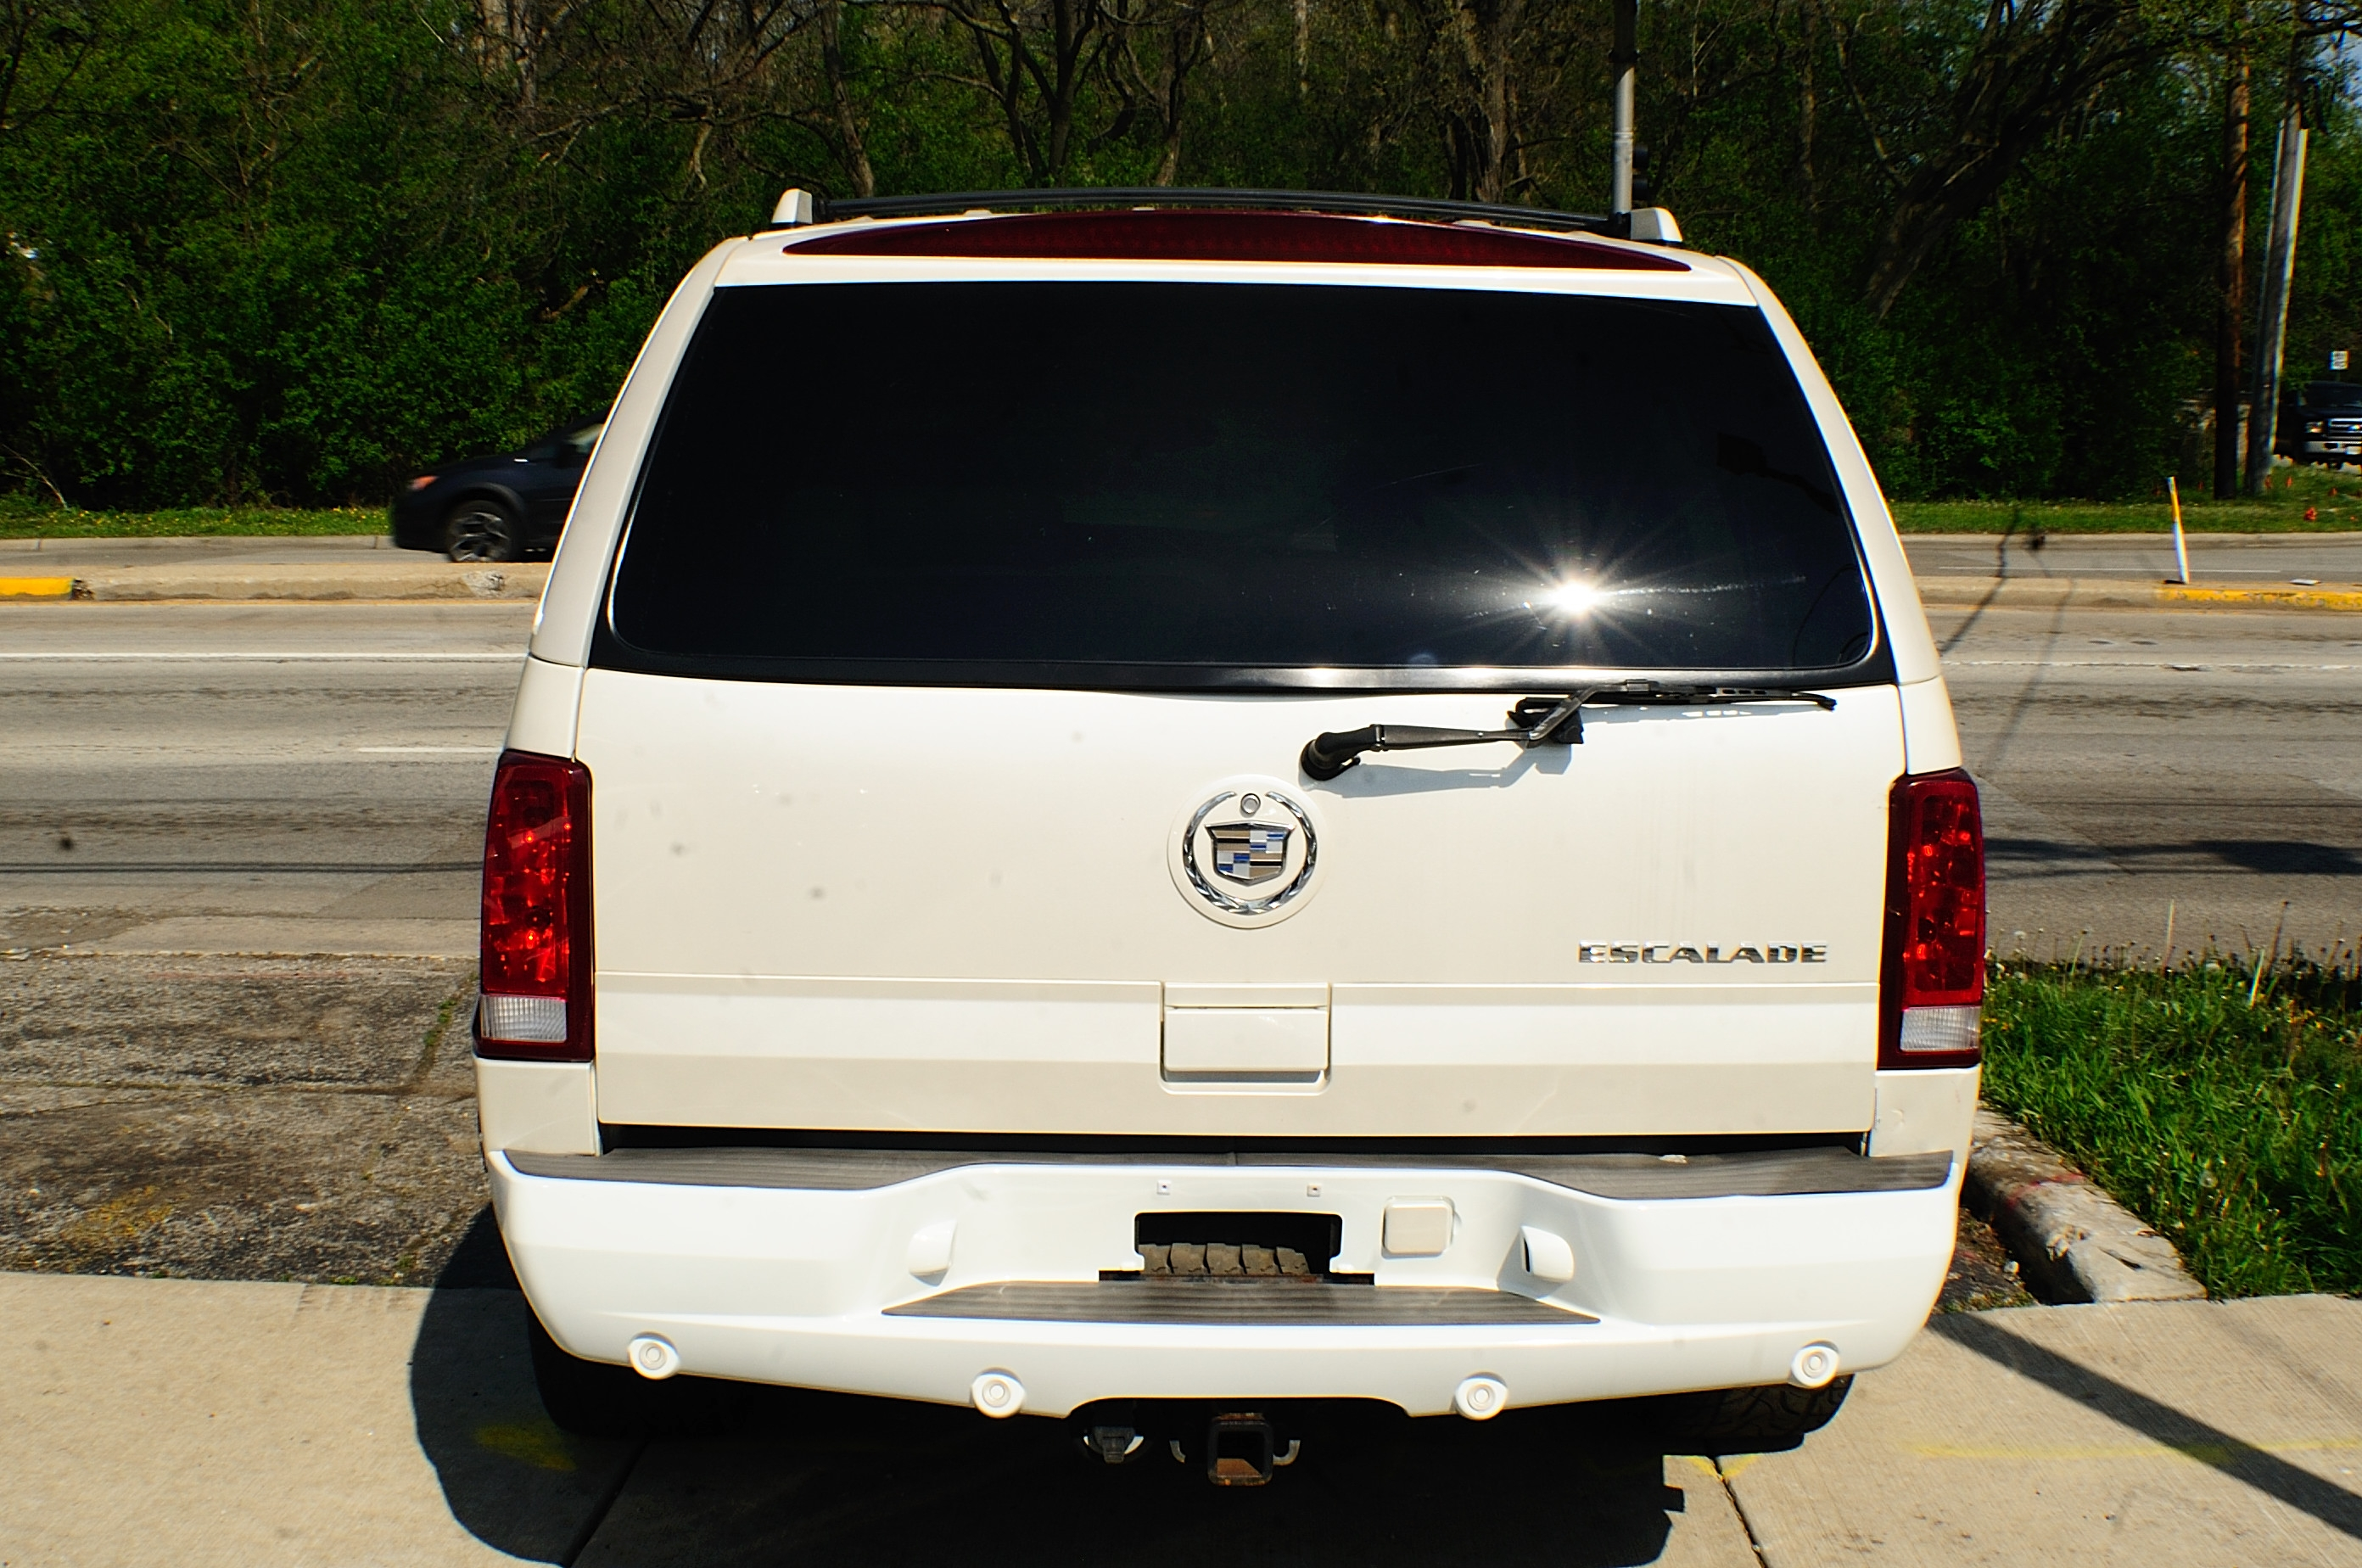 2003 Cadillac Escalade White TV Used SUV car sale Gurnee Hanover Park Hoffman Estates Lombard